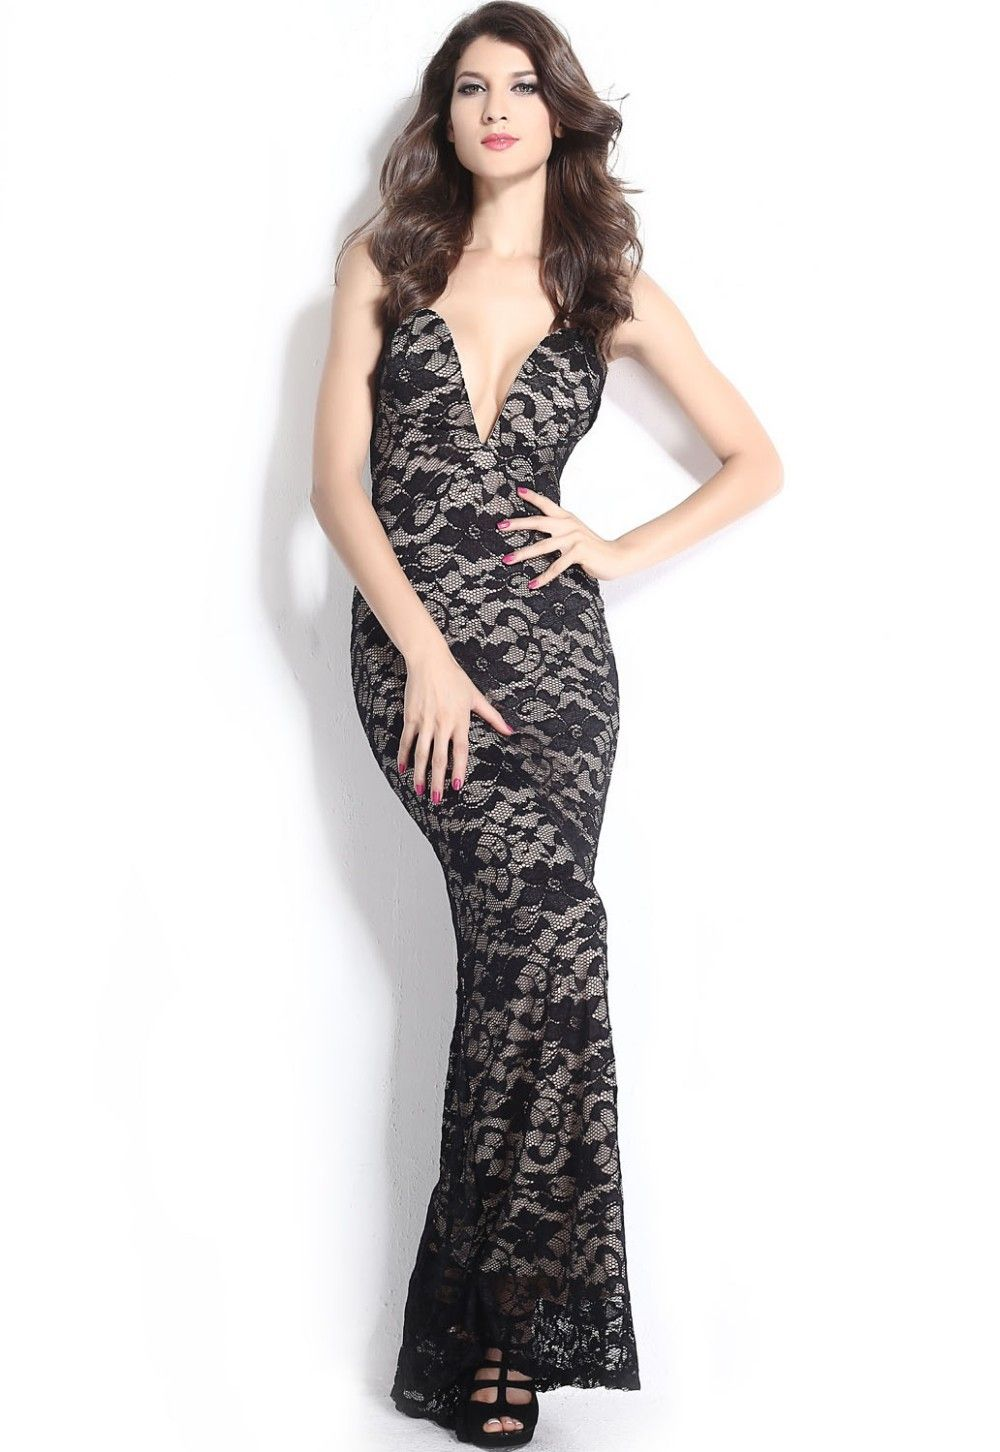 New black lace nude illusion plunging v neck strapless gown new